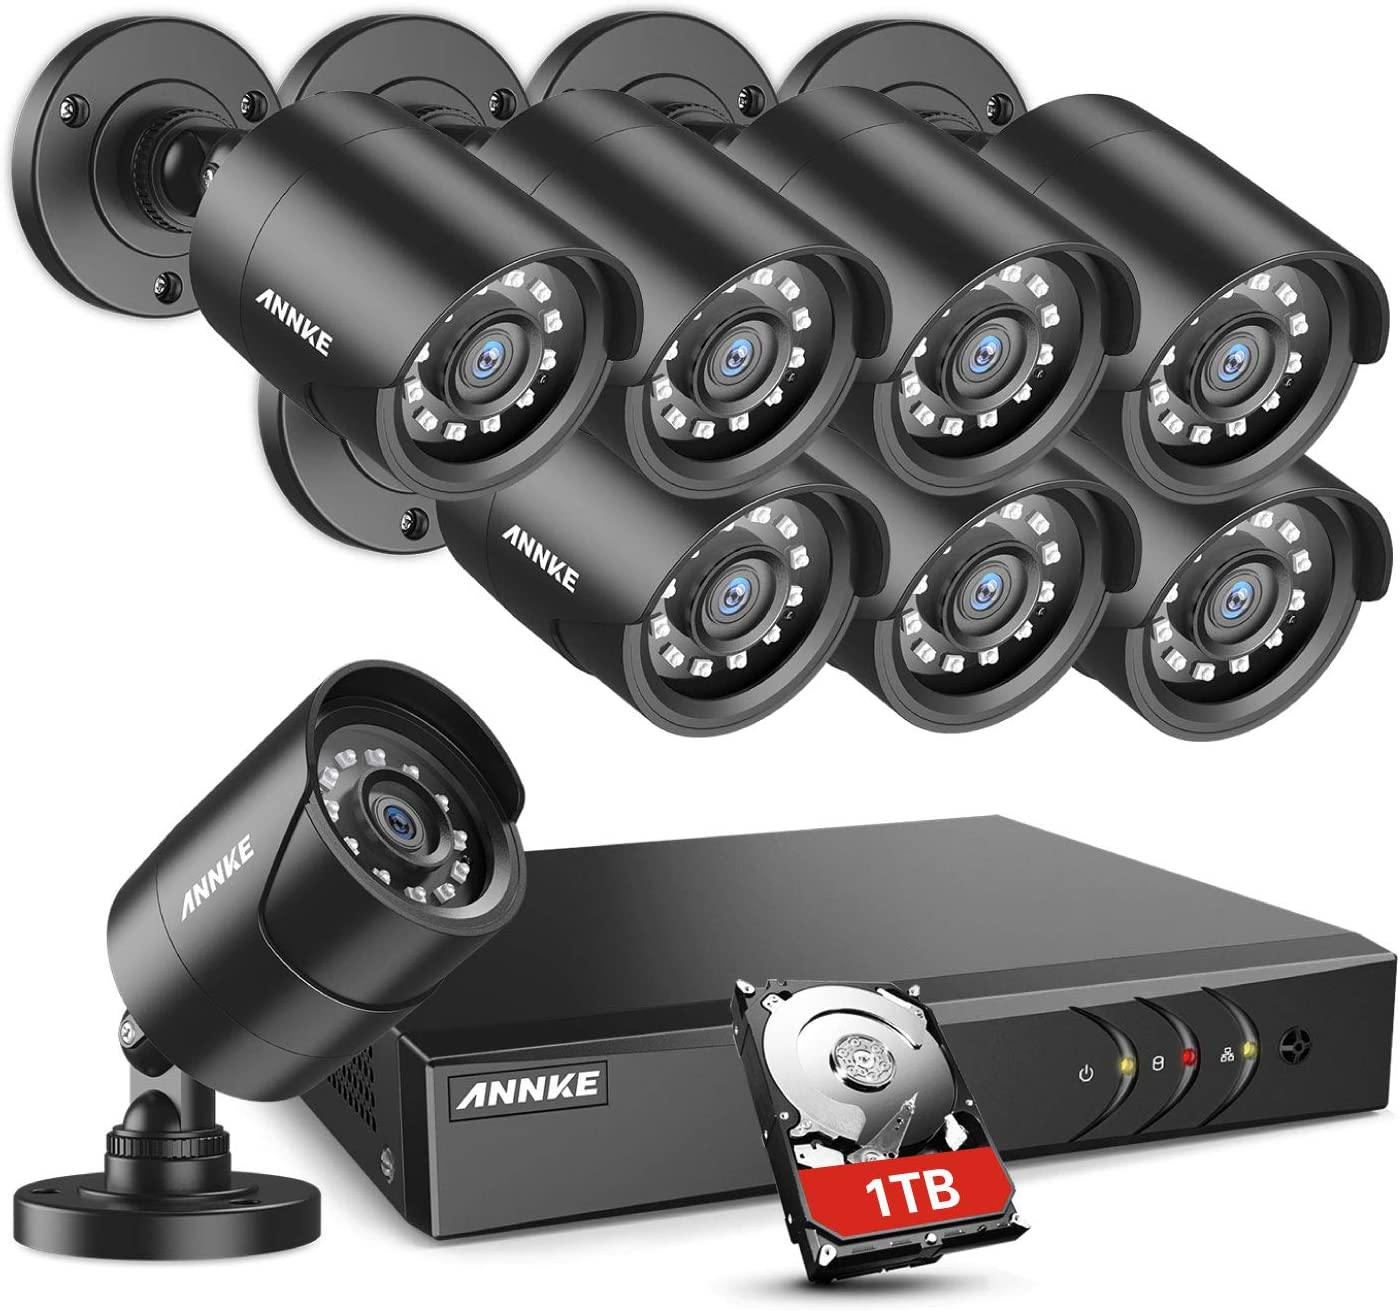 Amazon Com Annke 5mp Lite Security Camera System Outdoor 8 Channel H 265 Dvr And 8x1920tvl Ip66 Weatherproof Home Cctv Cameras Smart Playback Instant Email Alert With Images 1tb Hard Drive Y200 Camera